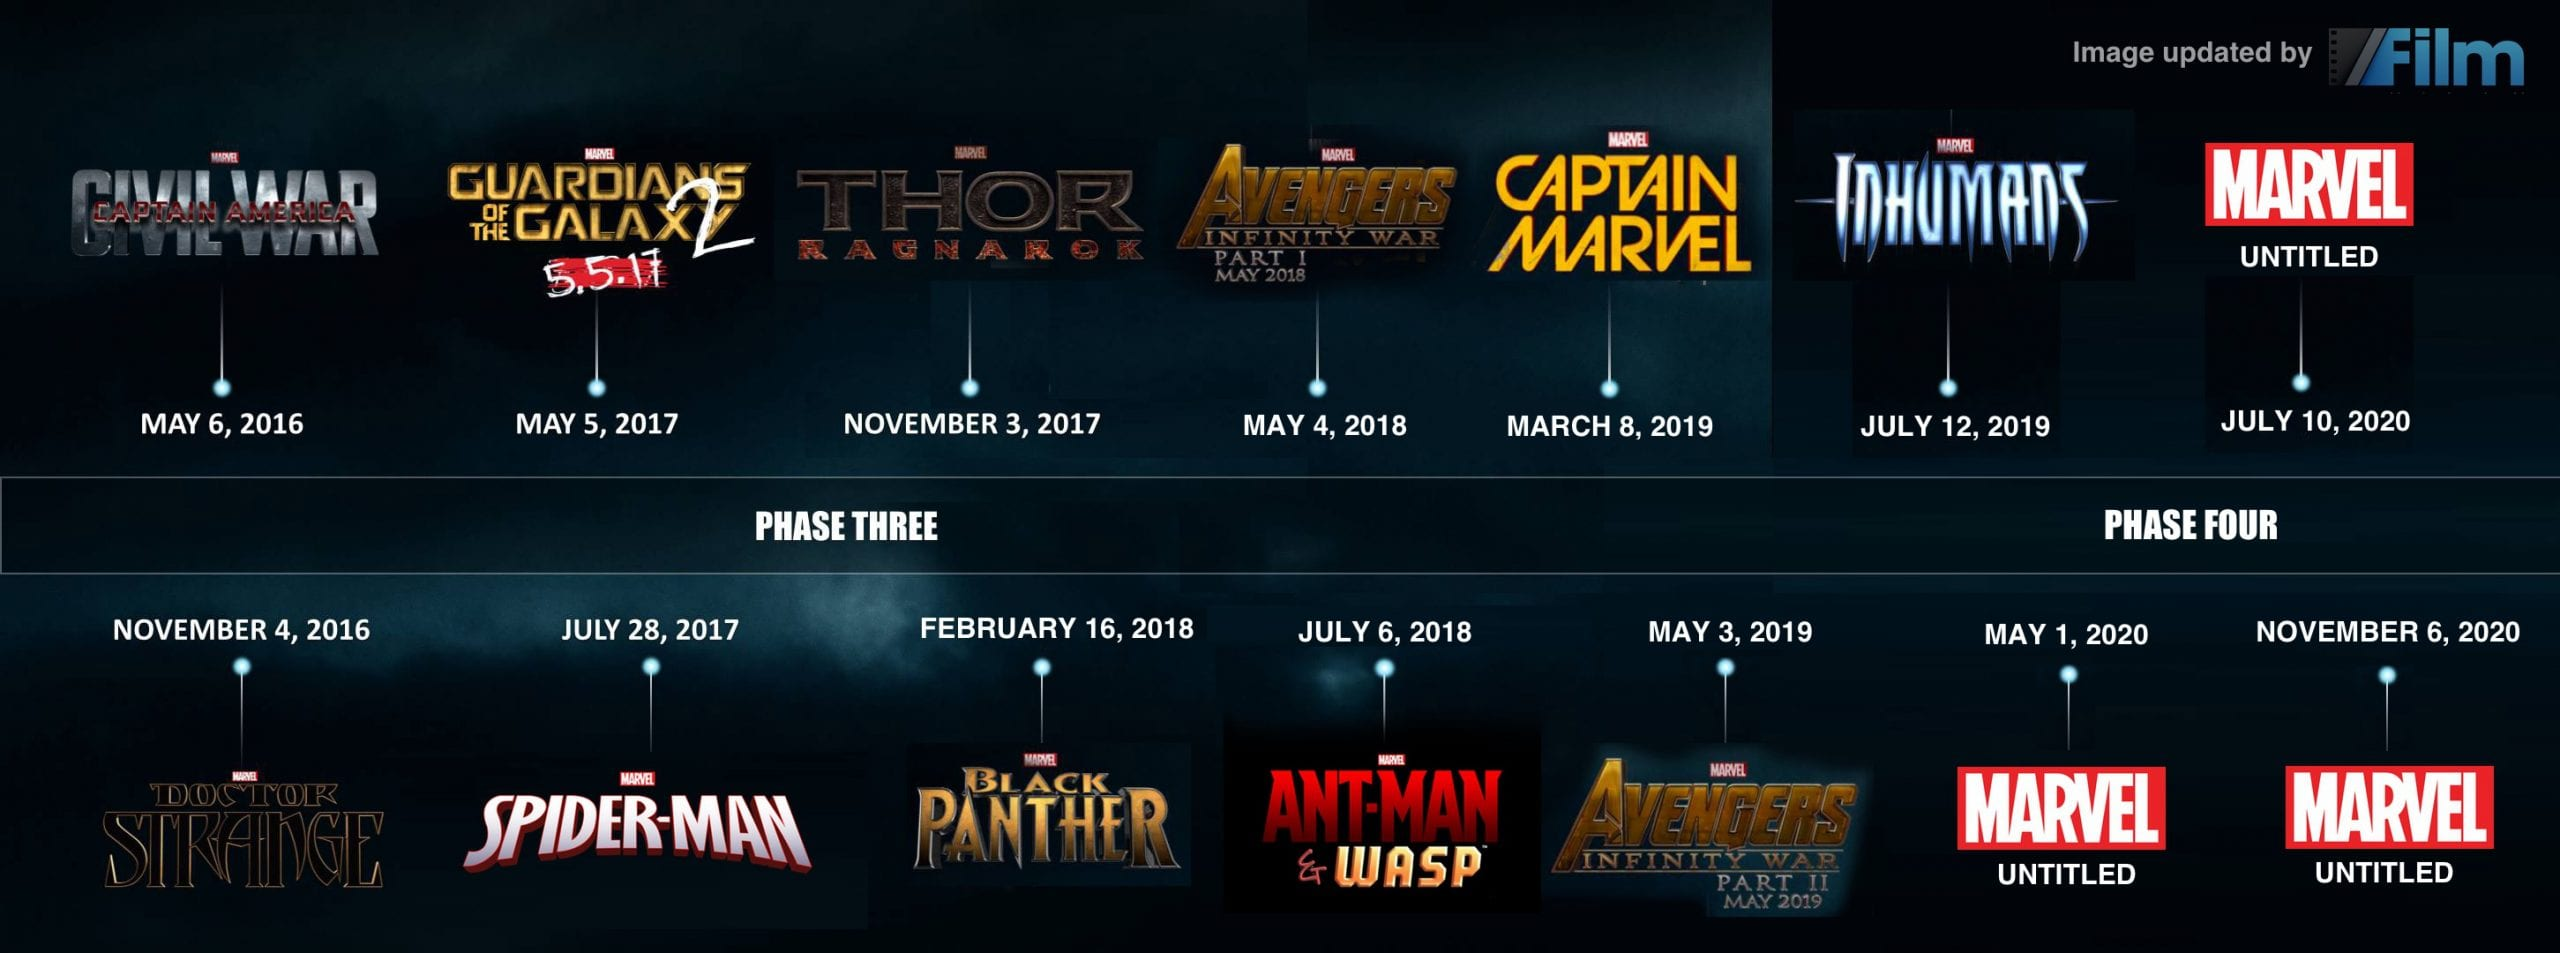 Why Marvel Disney Won T Announce Any Phase 4 Plans Fan